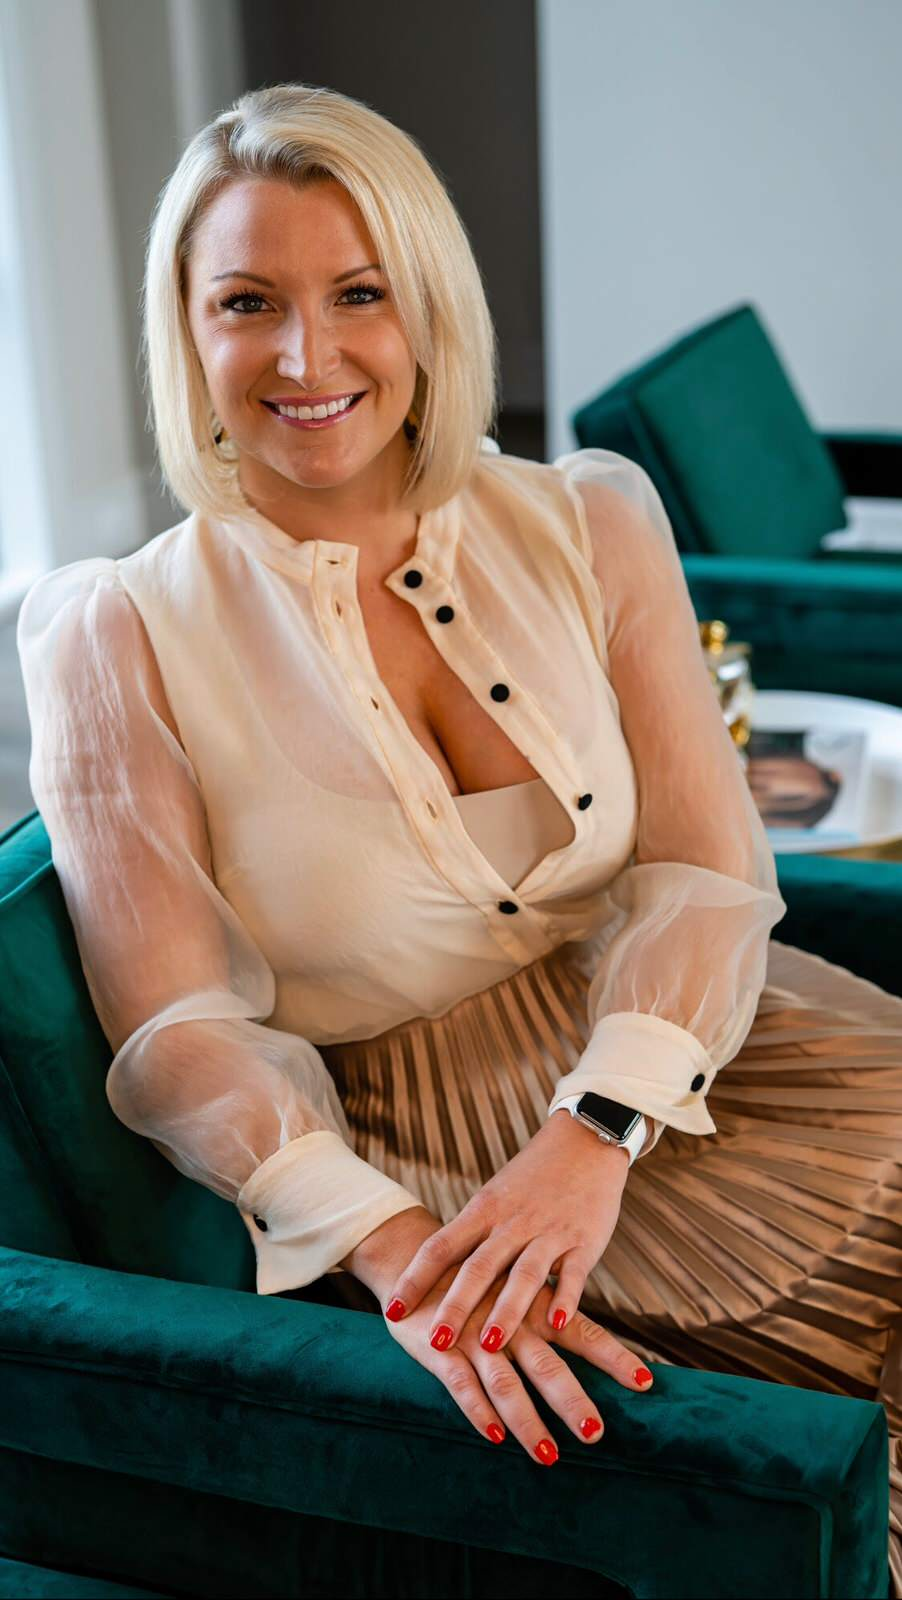 Kelsey Davis assists clients at Millennial Design Build to establish their dream home by working with new home builders in DFW and Dallas Interior Designers.